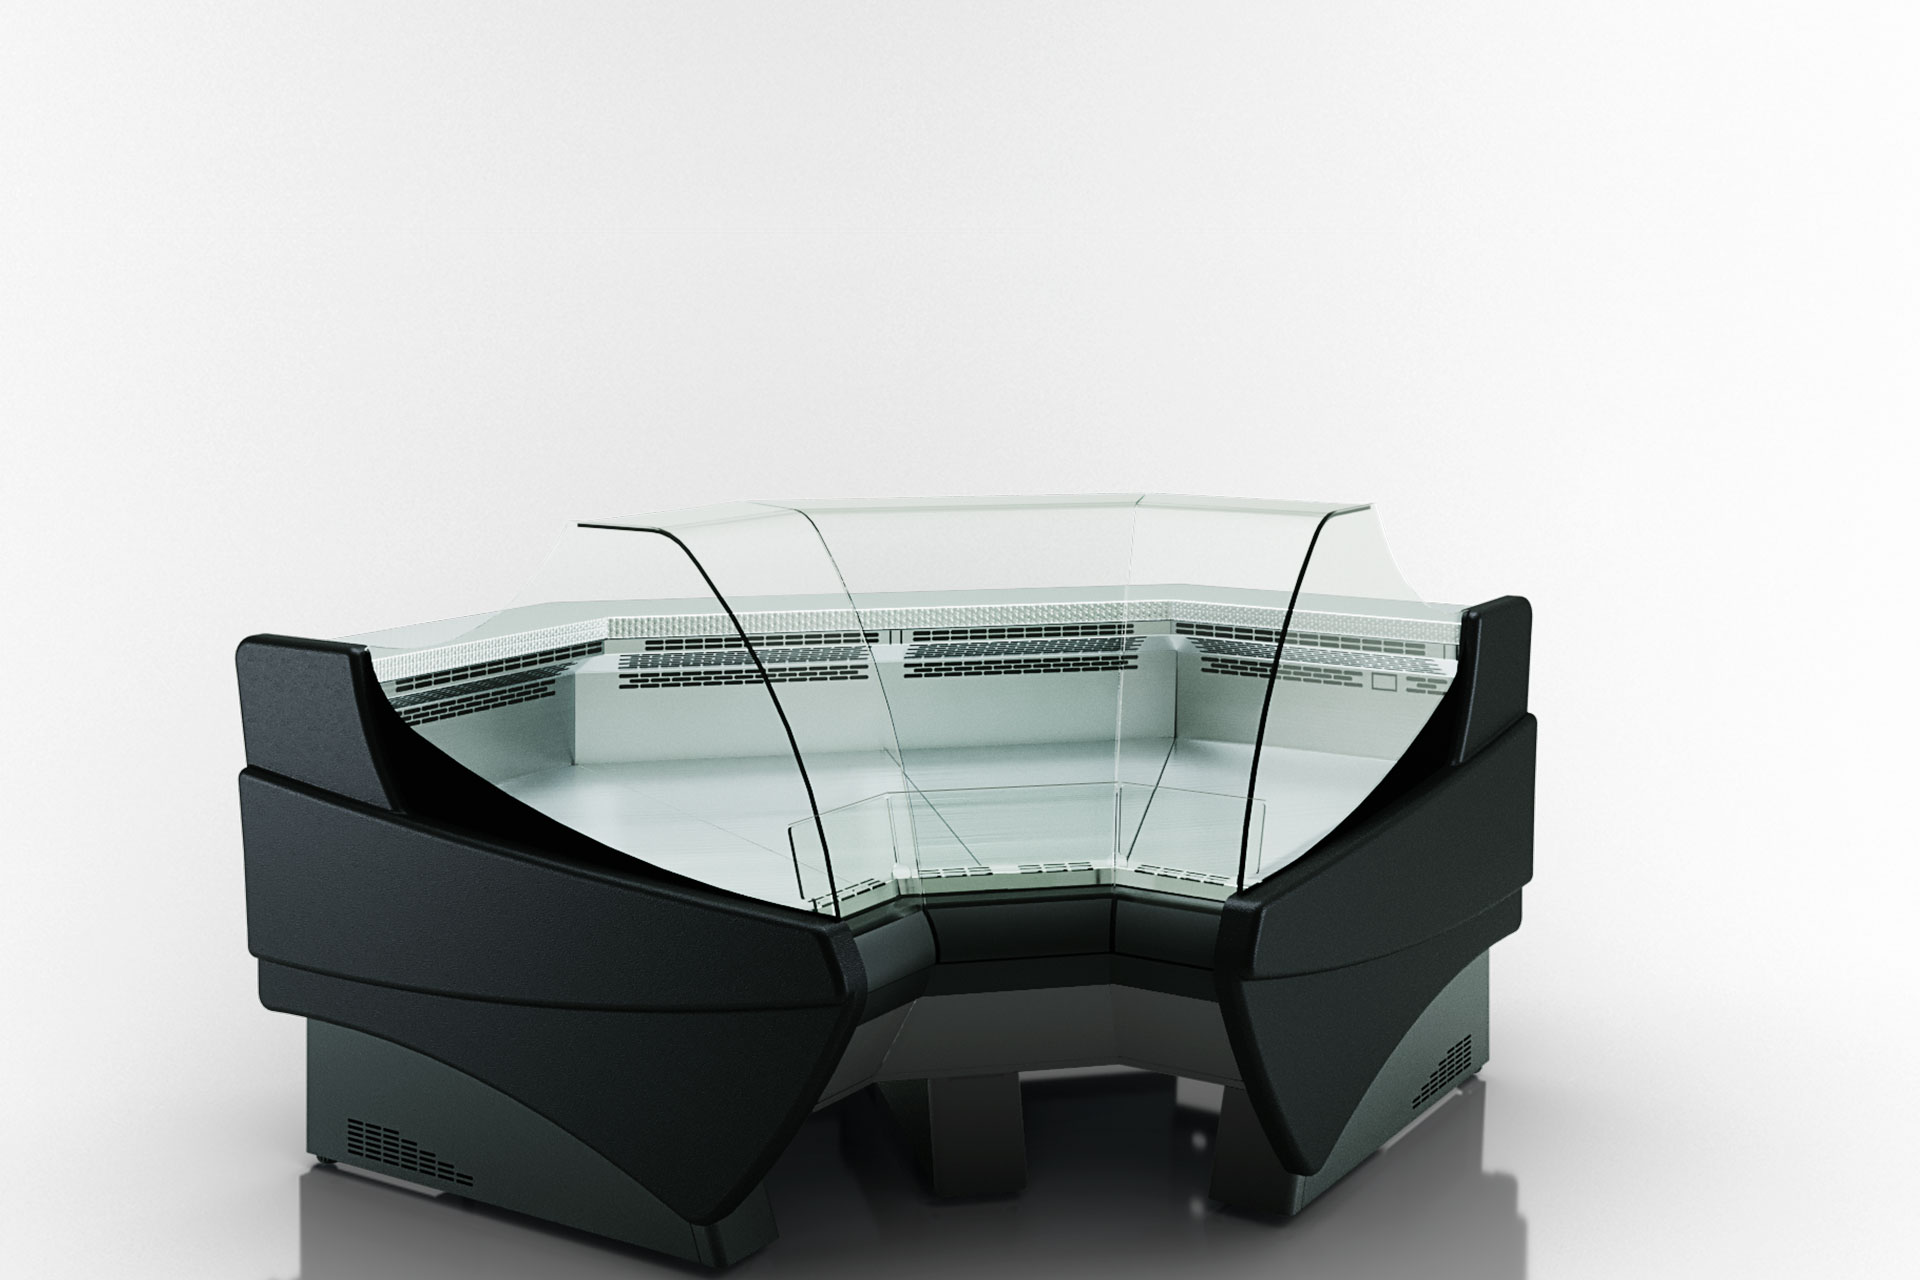 Counter Symphony luxe MG 120 deli T 110-DLM-IS90